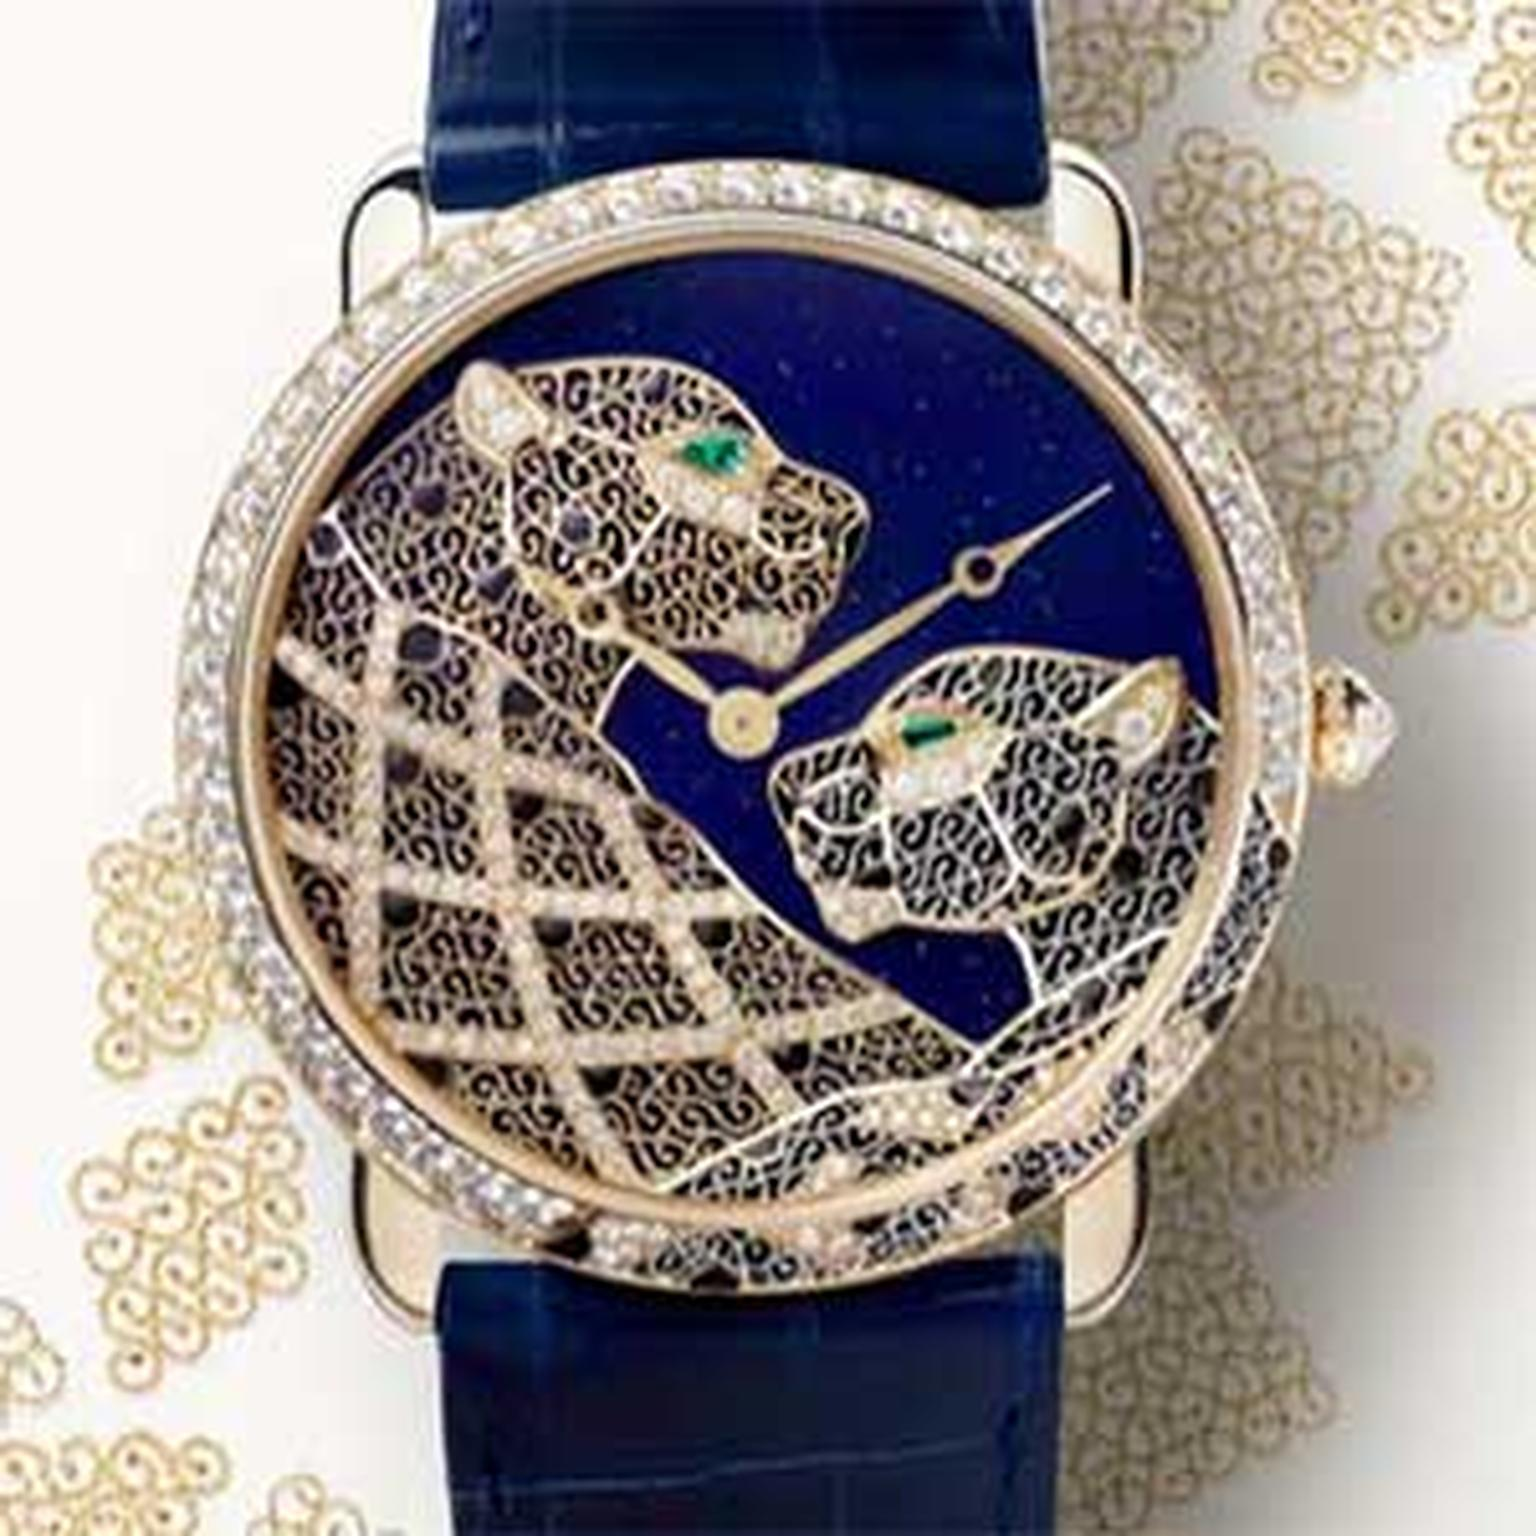 Cartier -filigree -watch